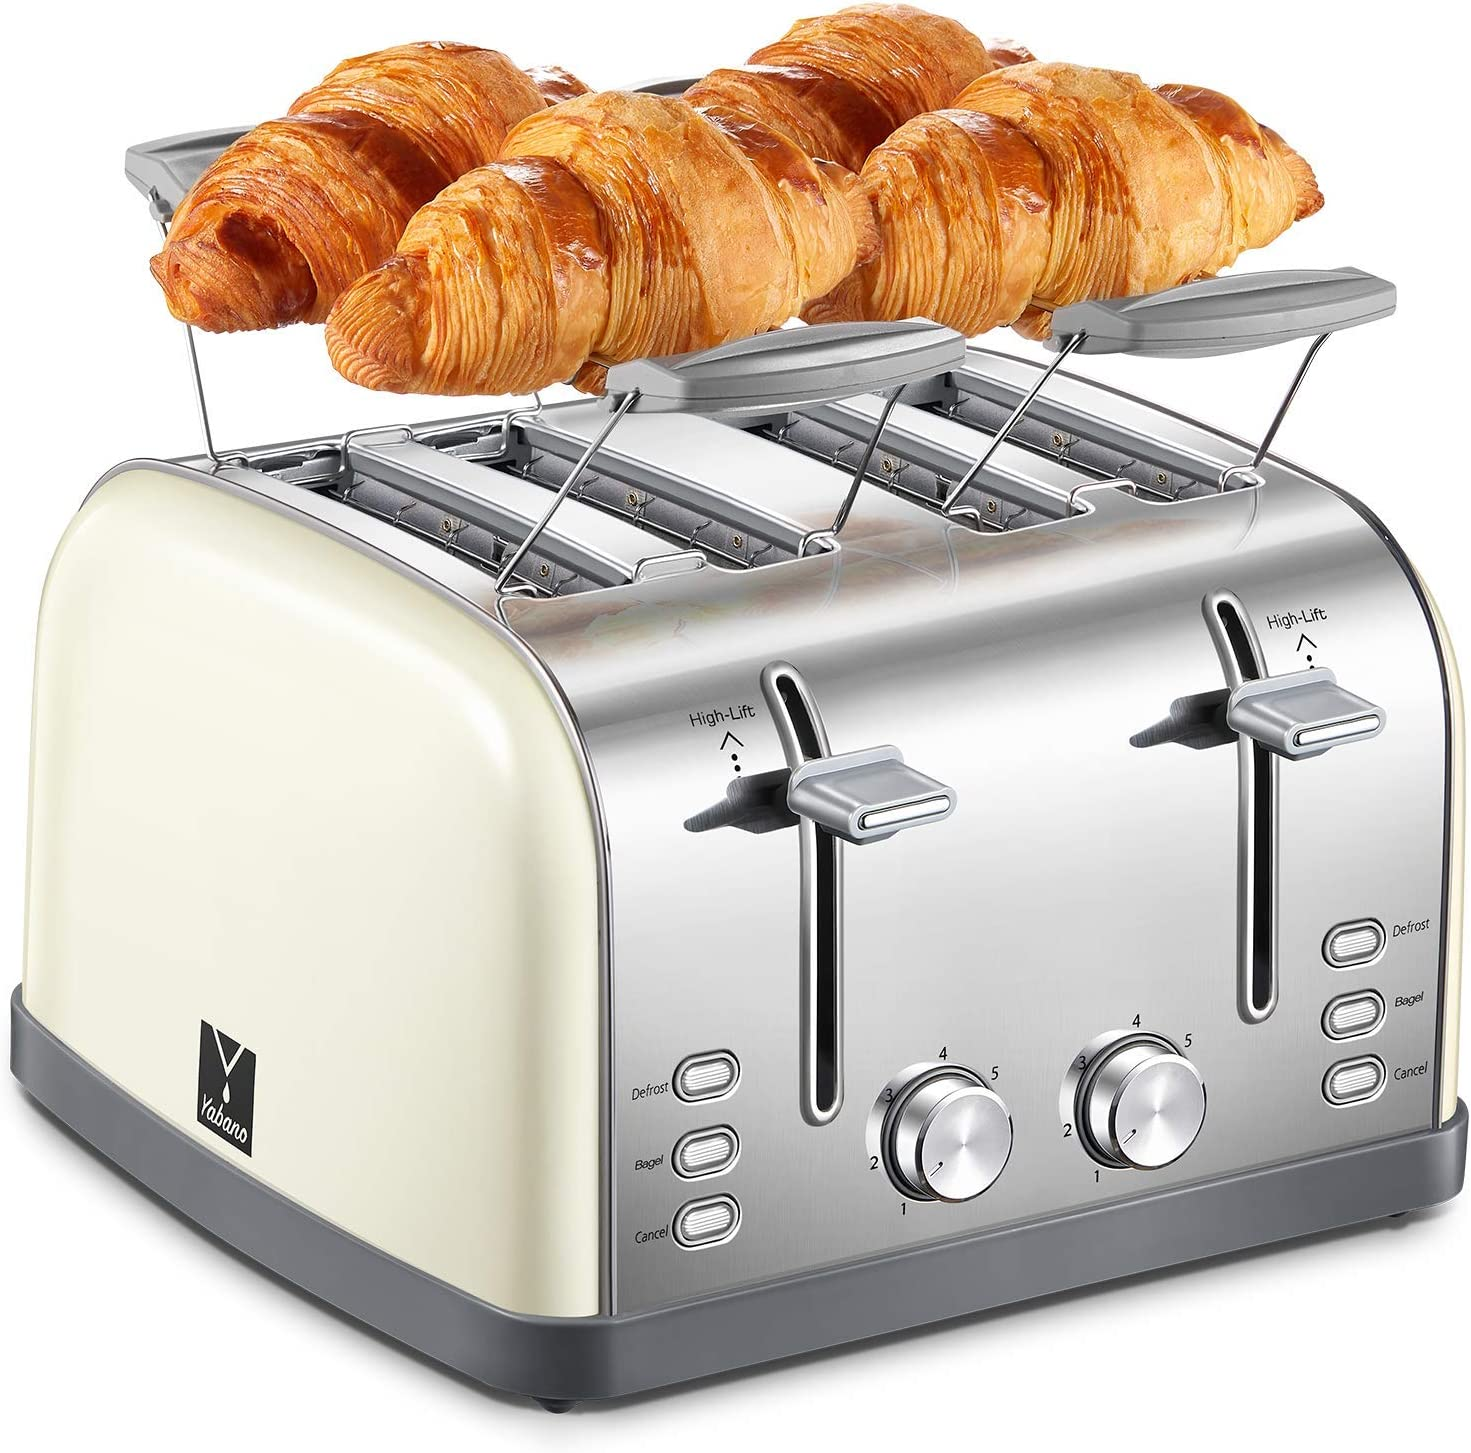 4 Slice toaster, Retro Bagel Toaster Toaster with 7 Bread Shade Settings, 4 Extra Wide Slots, Defrost/Bagel/Cancel Function, Removable Crumb Tray, Stainless Steel Toaster by Yabano, Yellow (Renewed)